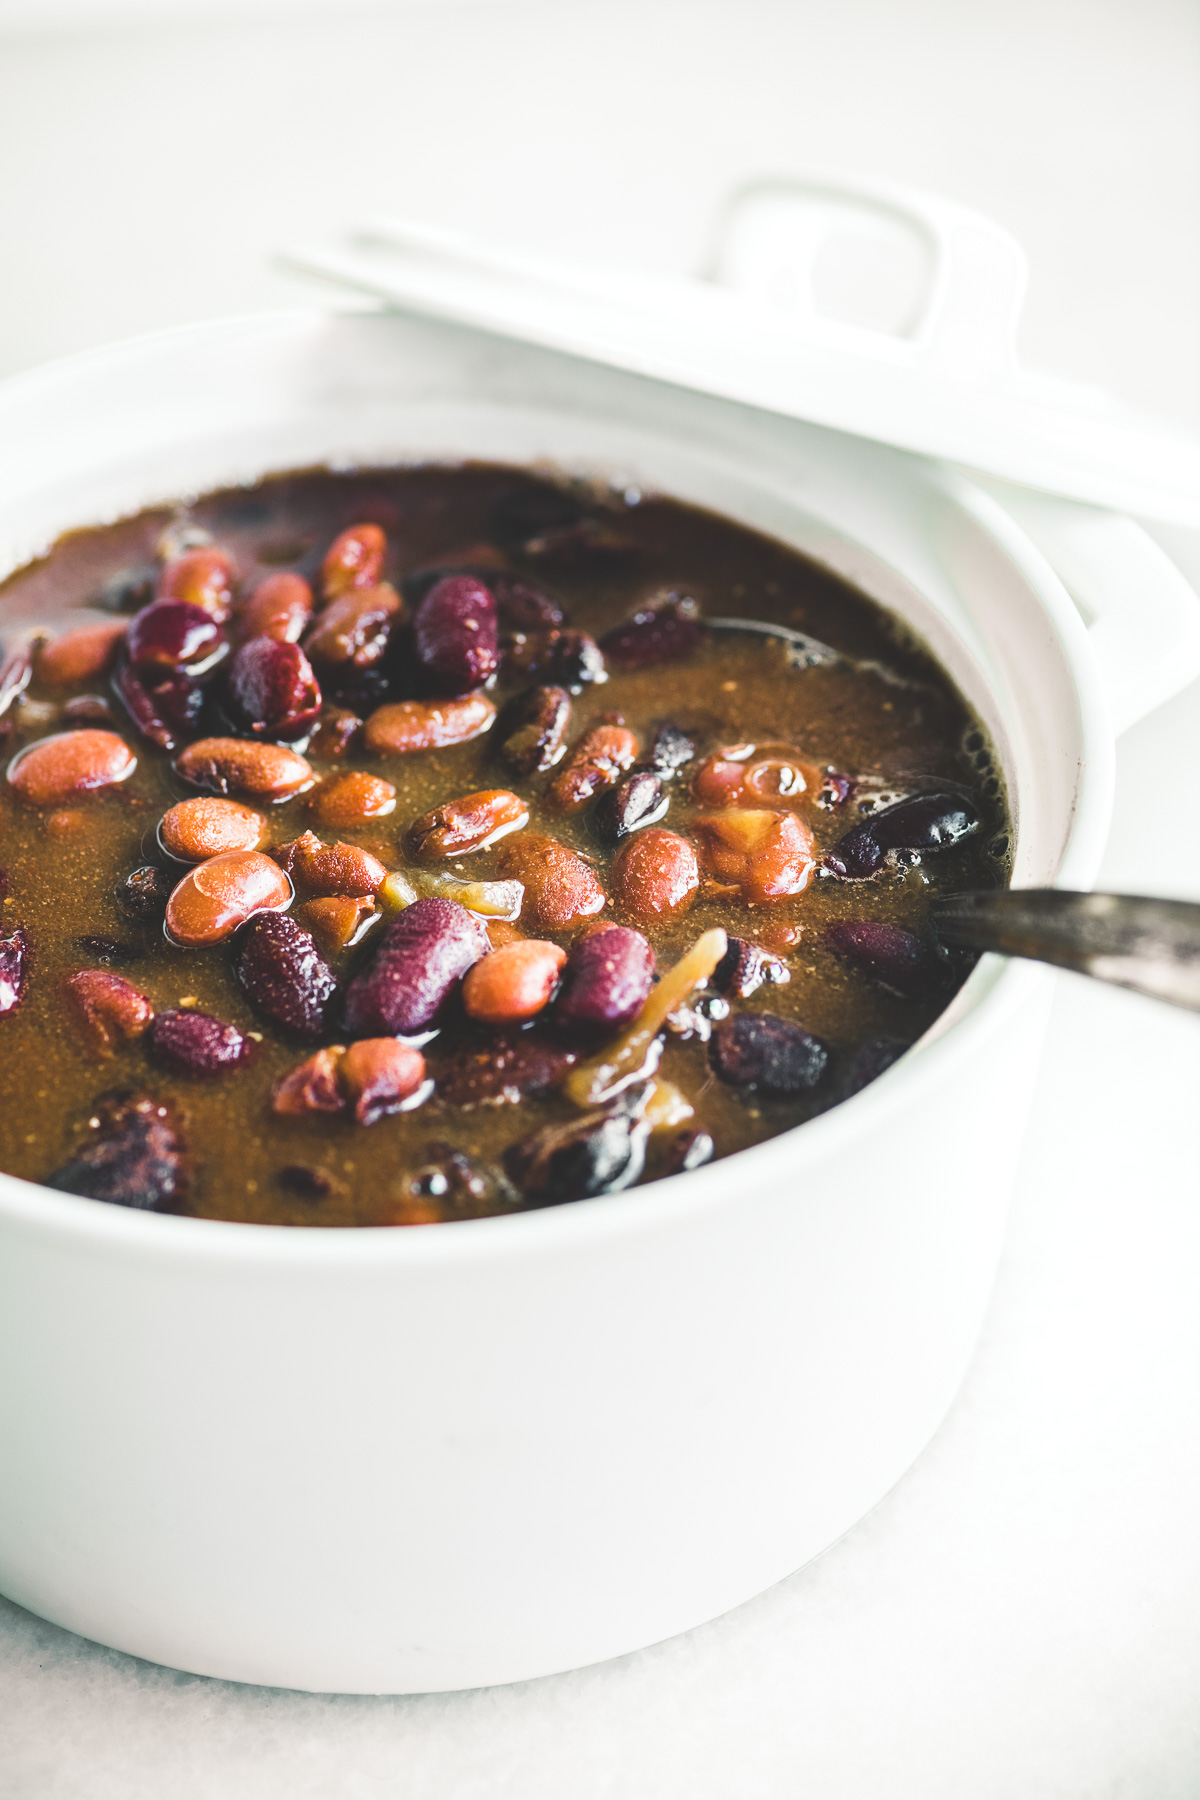 Baked beans in a white bean pot